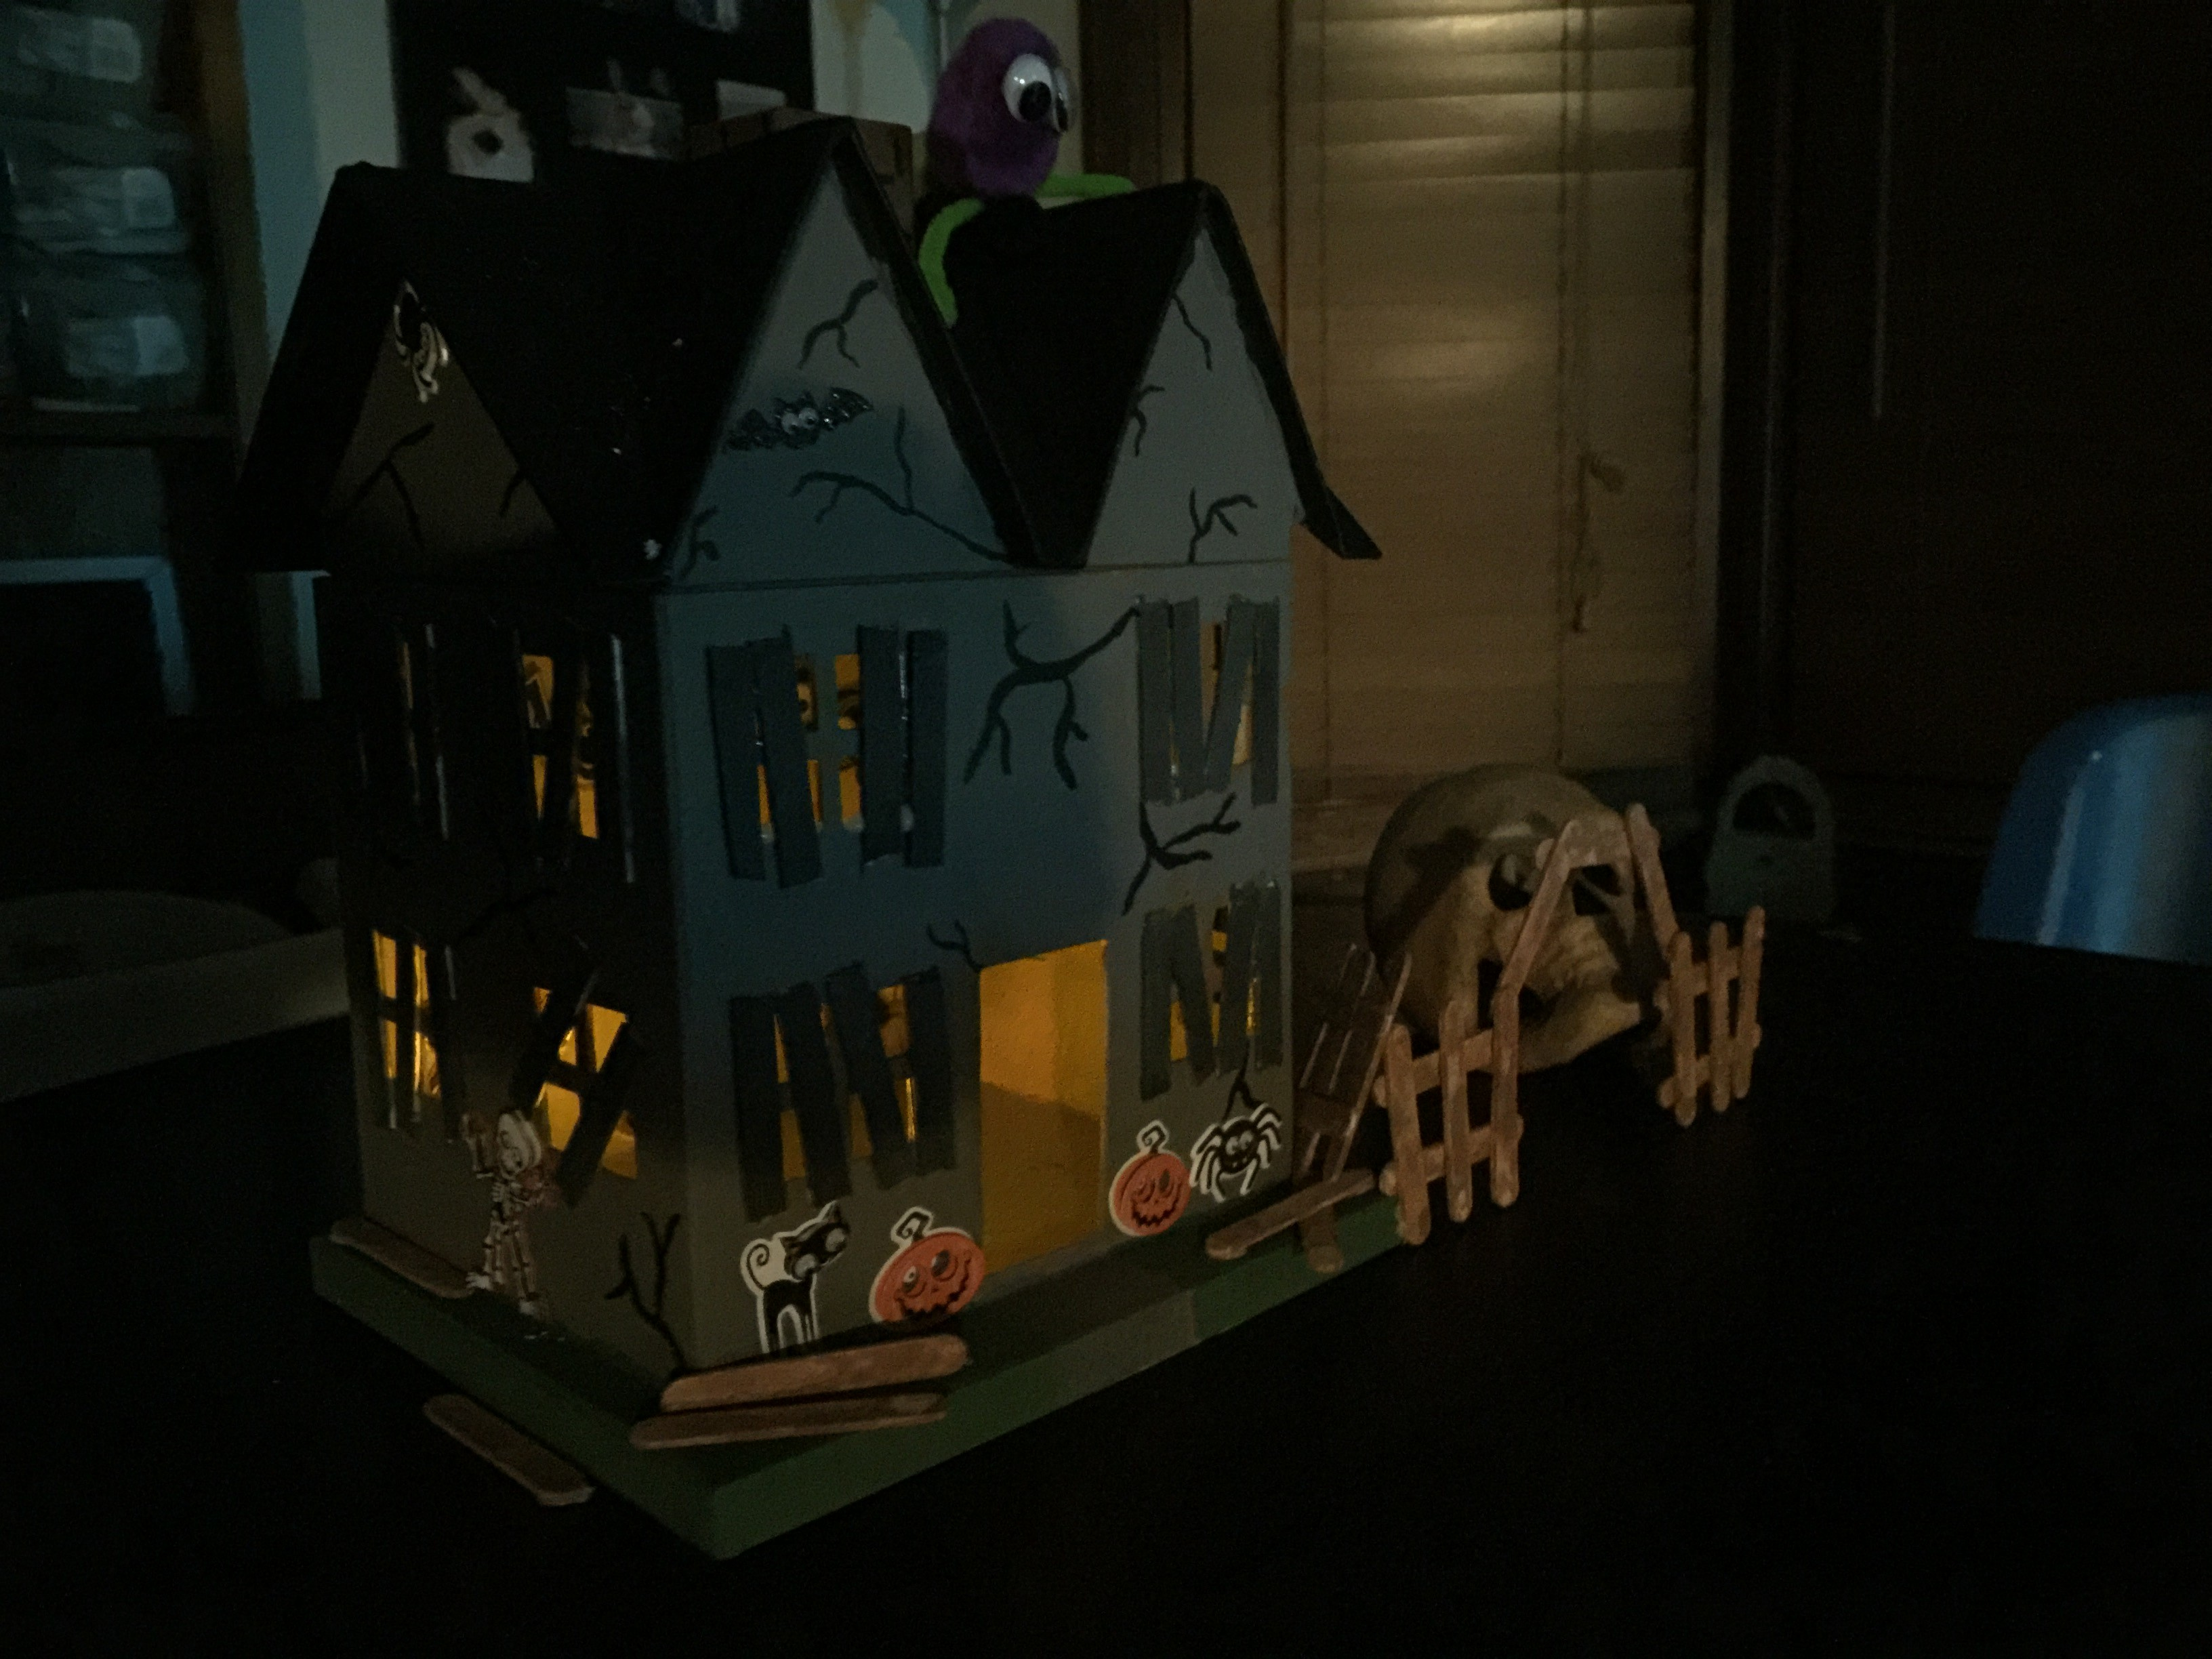 A Crafty Halloween Haunted House